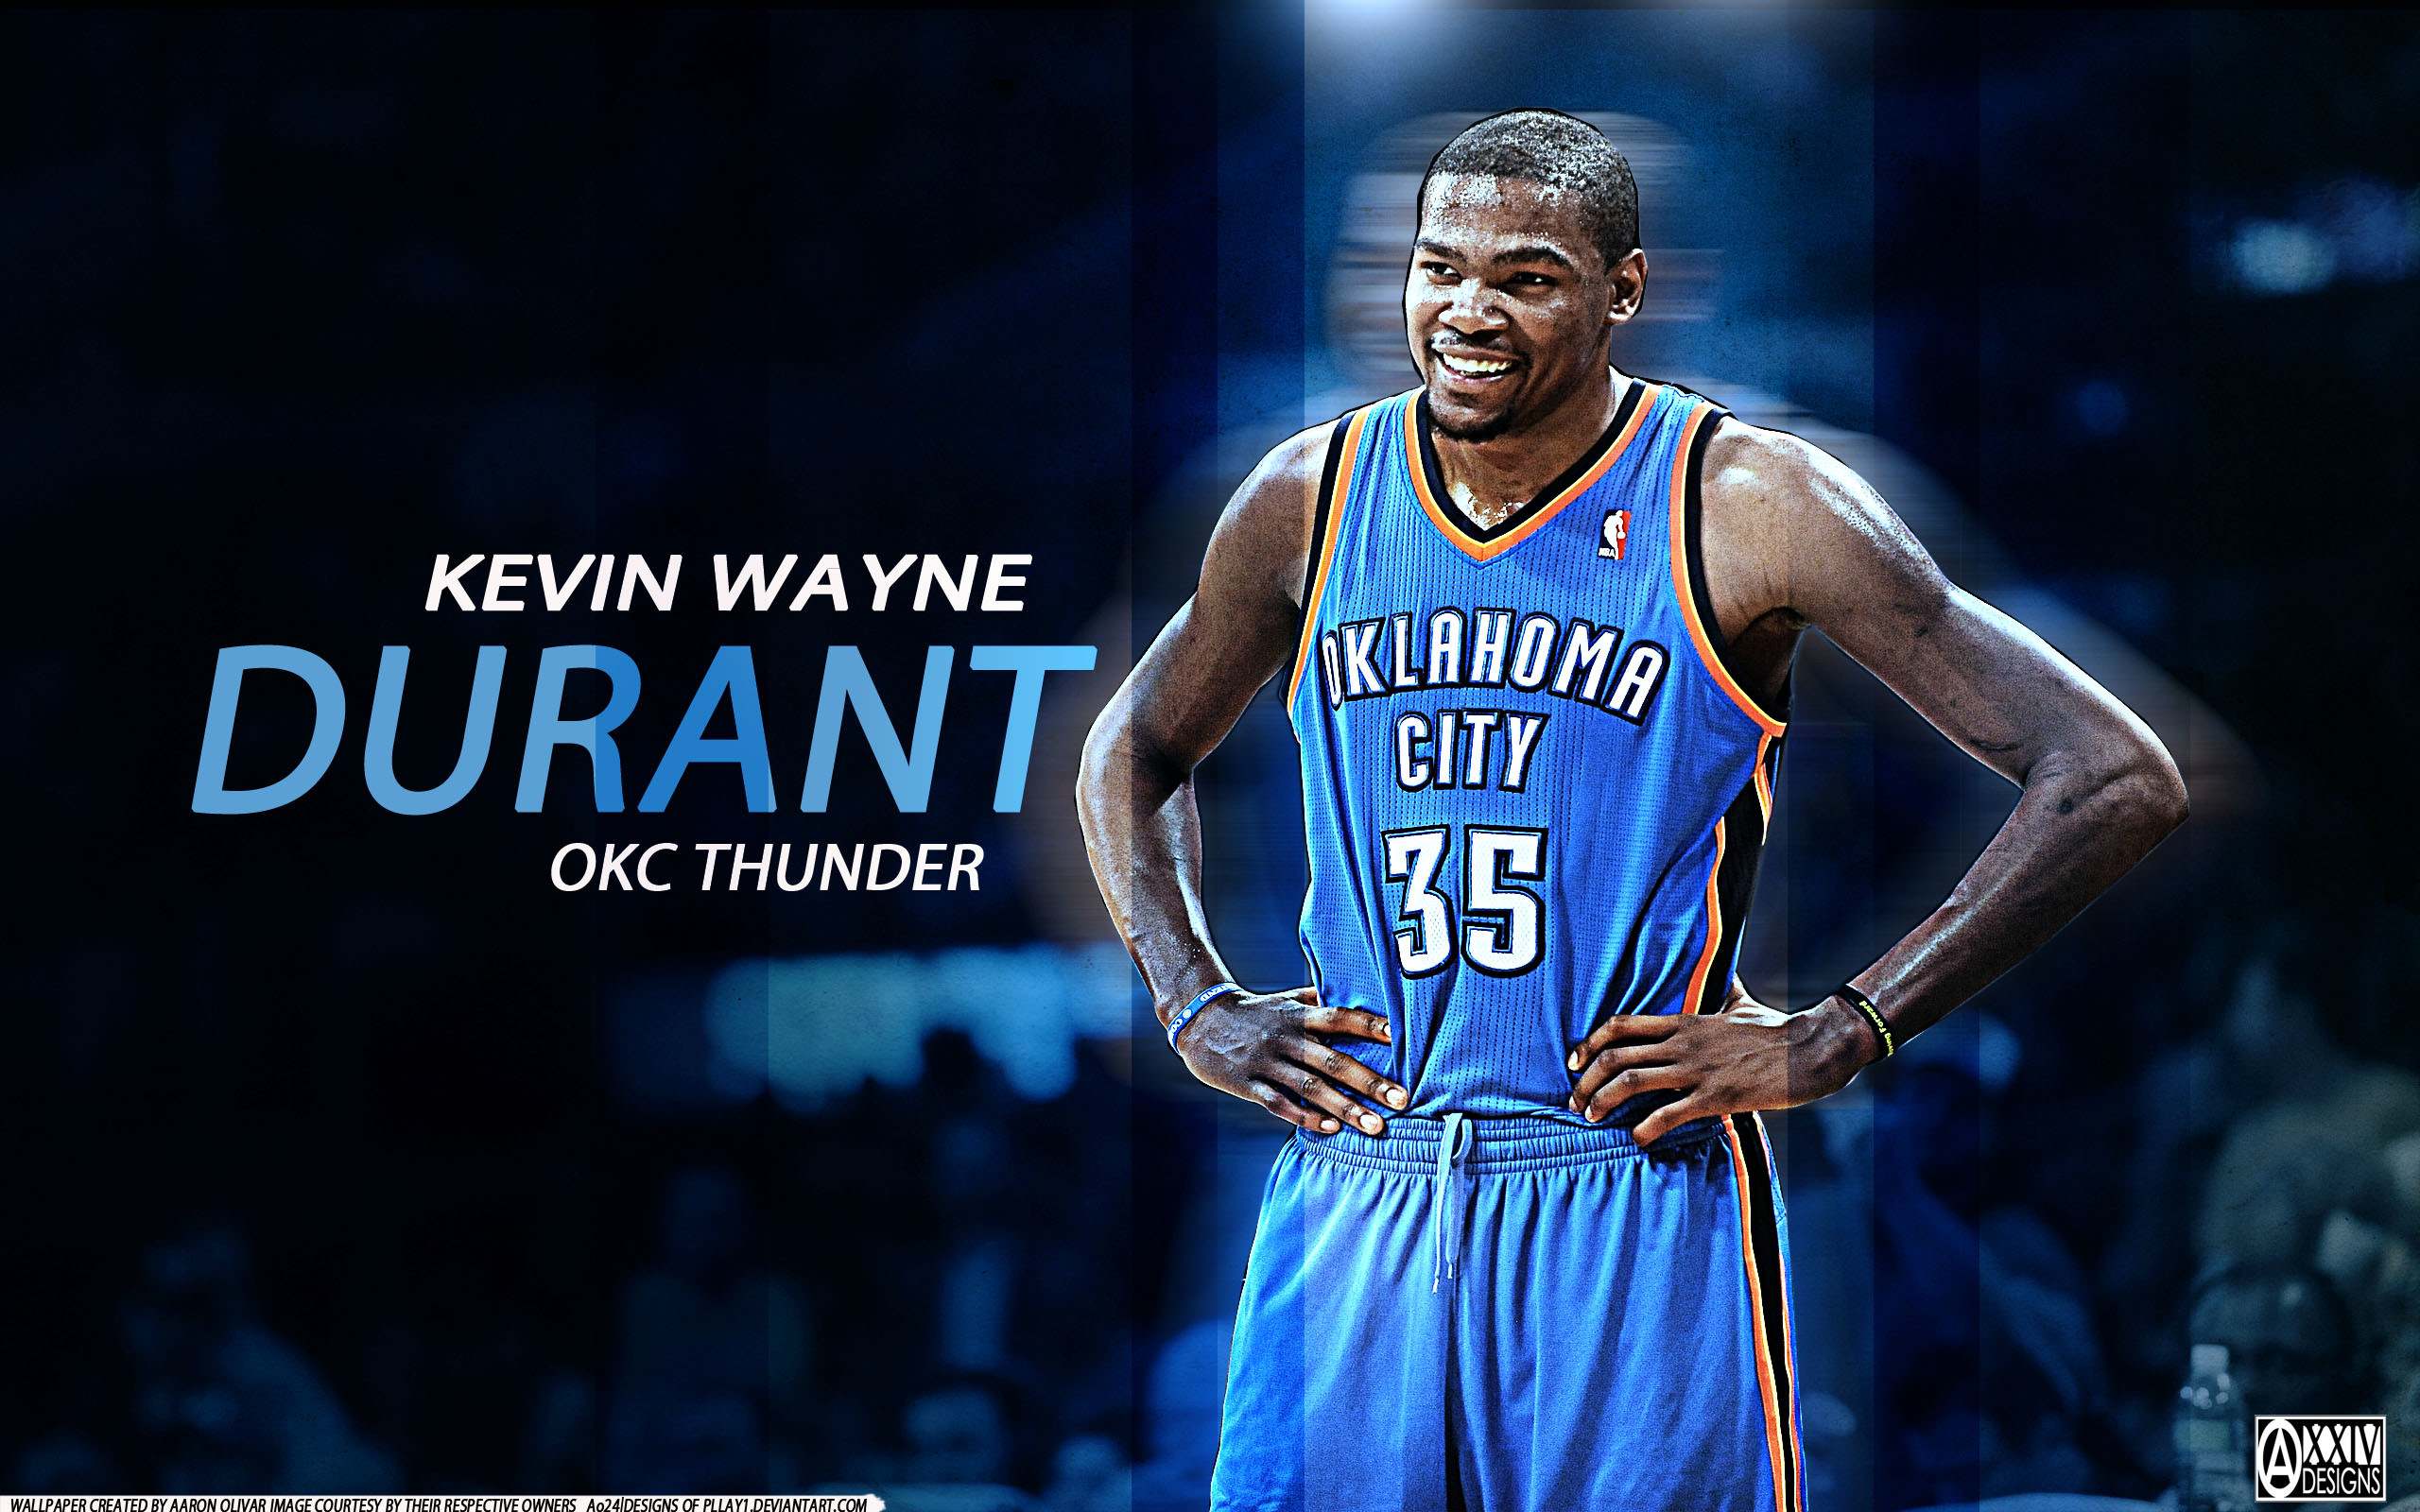 Kevin Durant Russell Westbrook Wallpaper | HD Wallpapers | Pinterest |  Kevin durant, Wallpaper and Wallpaper backgrounds